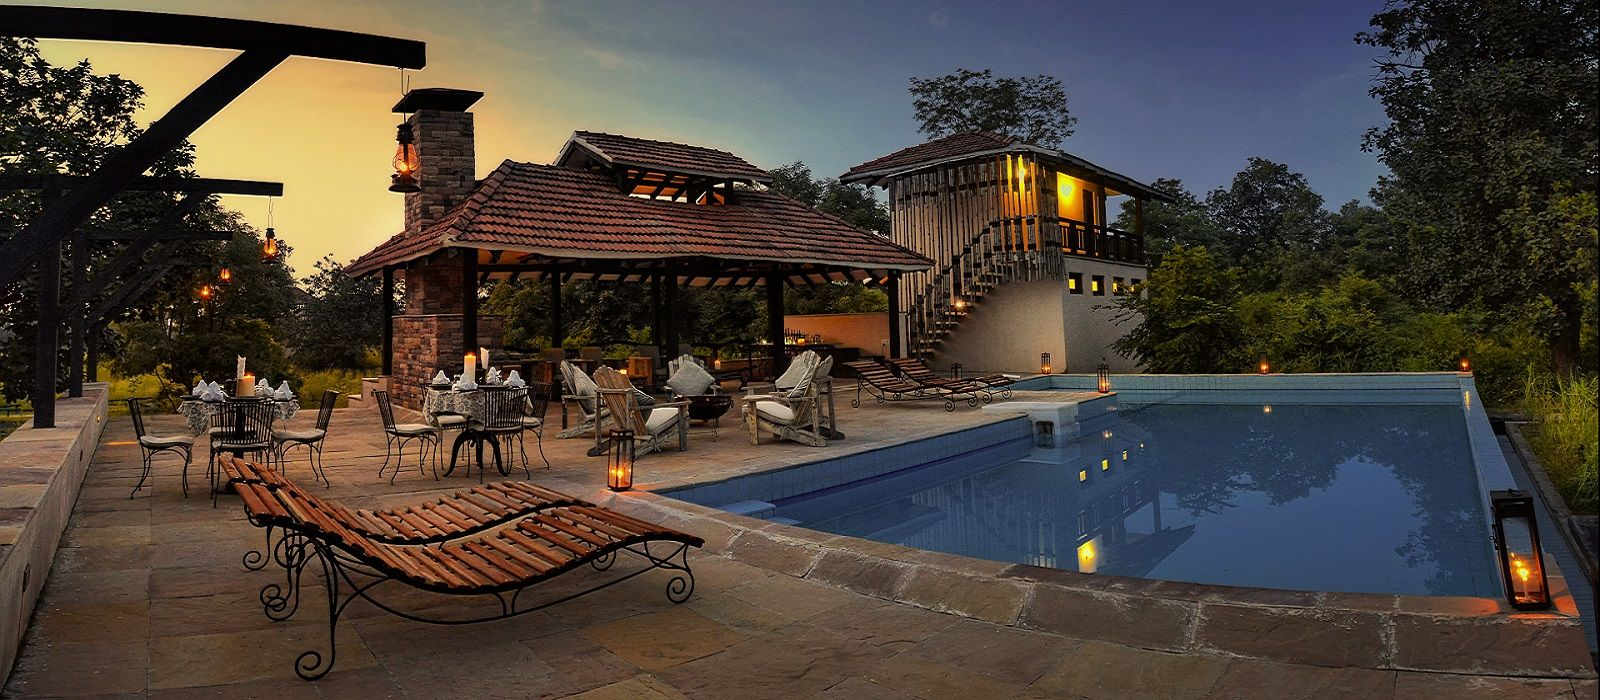 Hotel Denwa Backwater Escape Central & West India